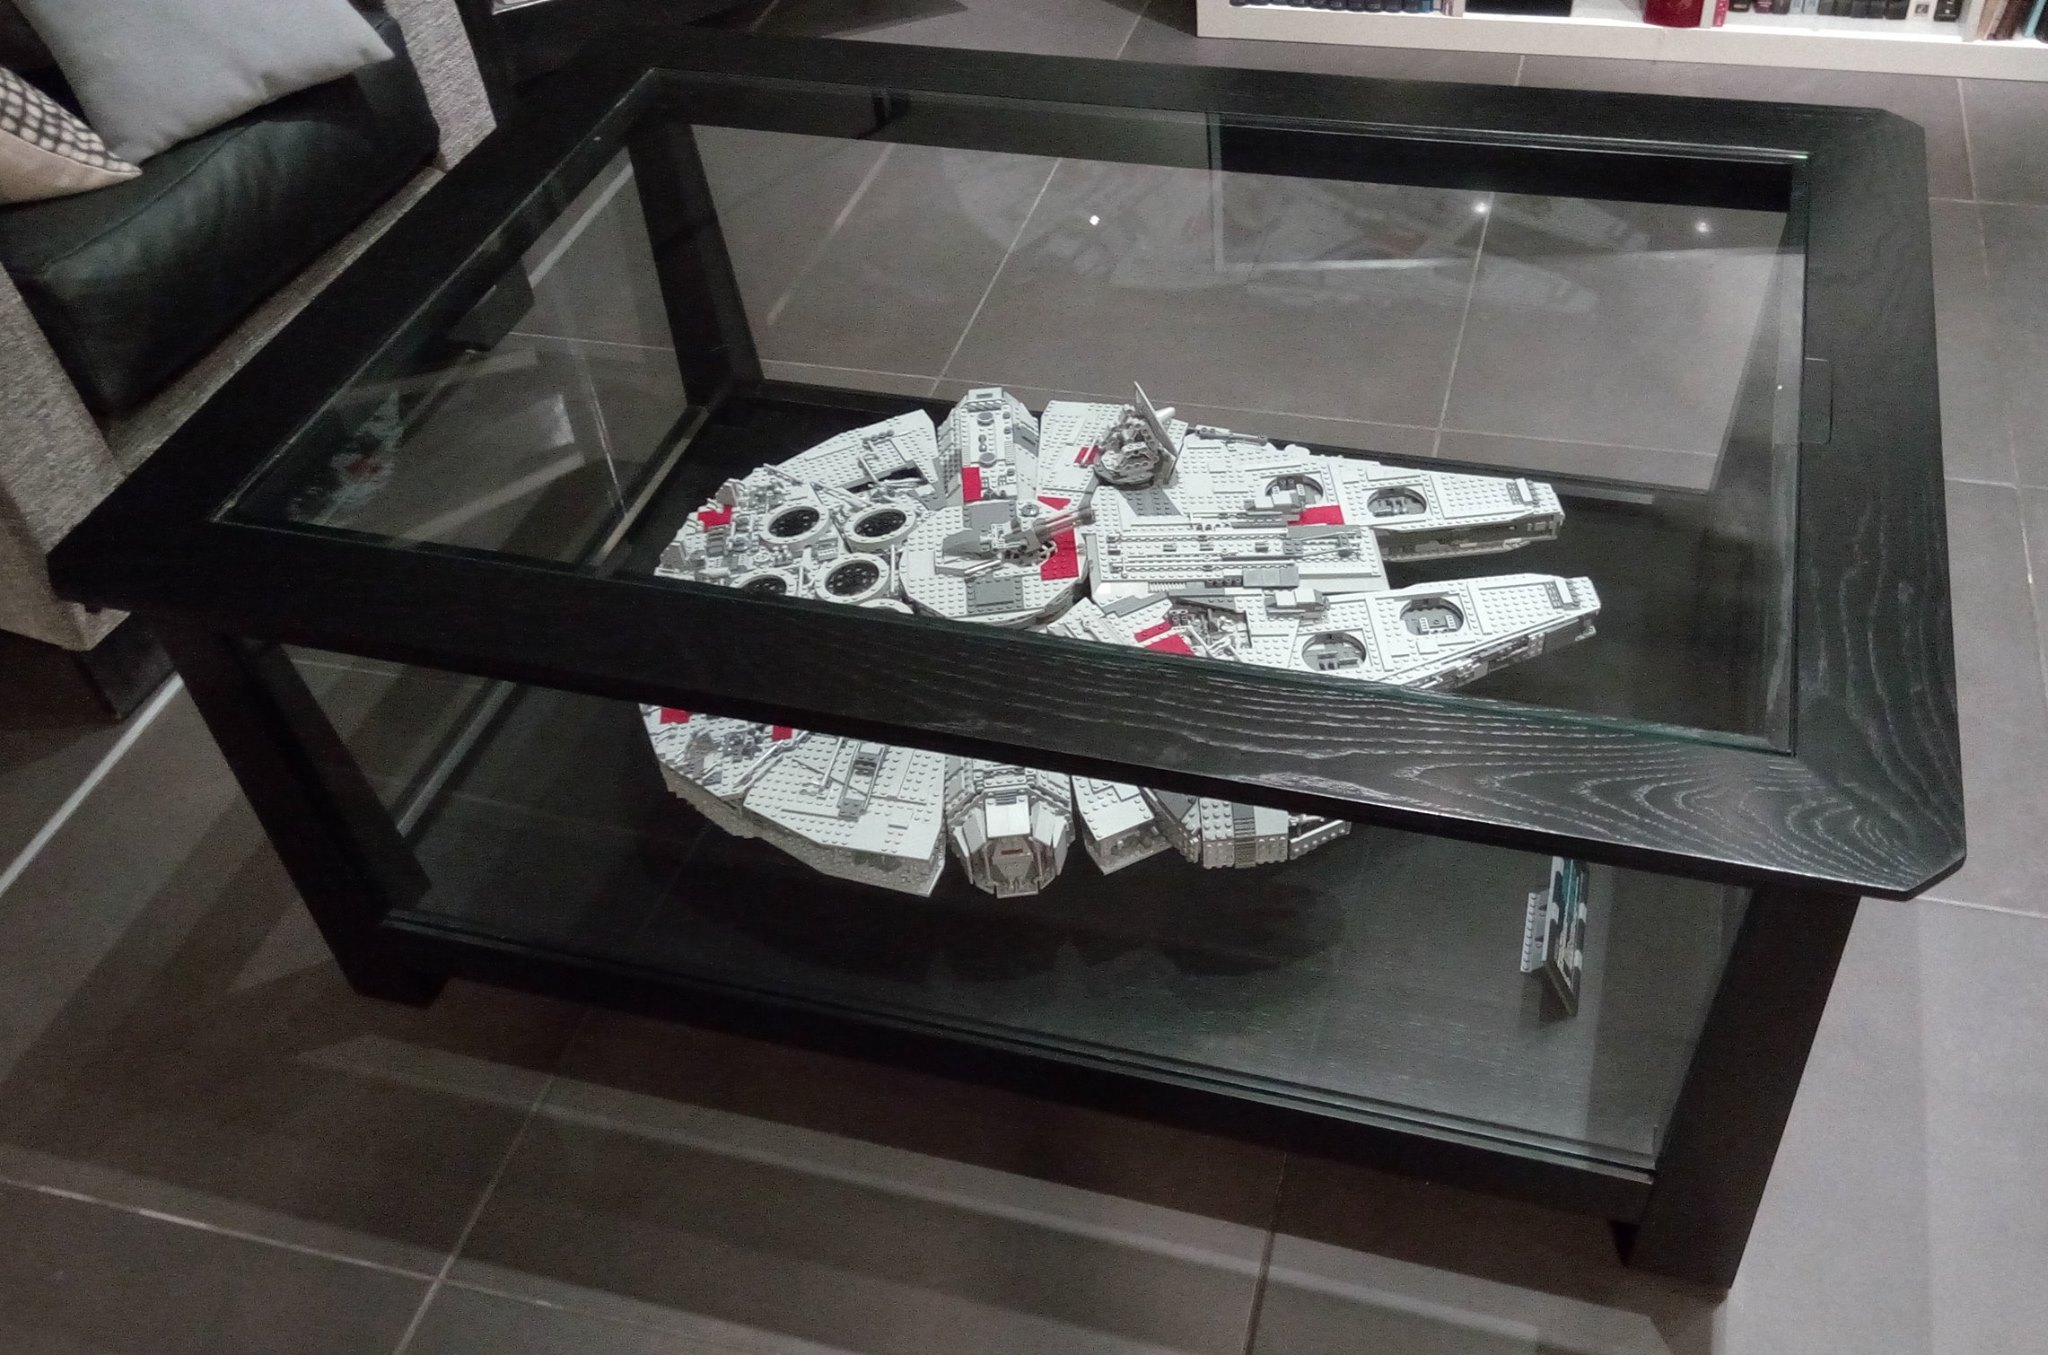 Wall Mount Tv Ideas For Living Room Exposer Son Millennium Falcon Lego Star Wars Hellobricks